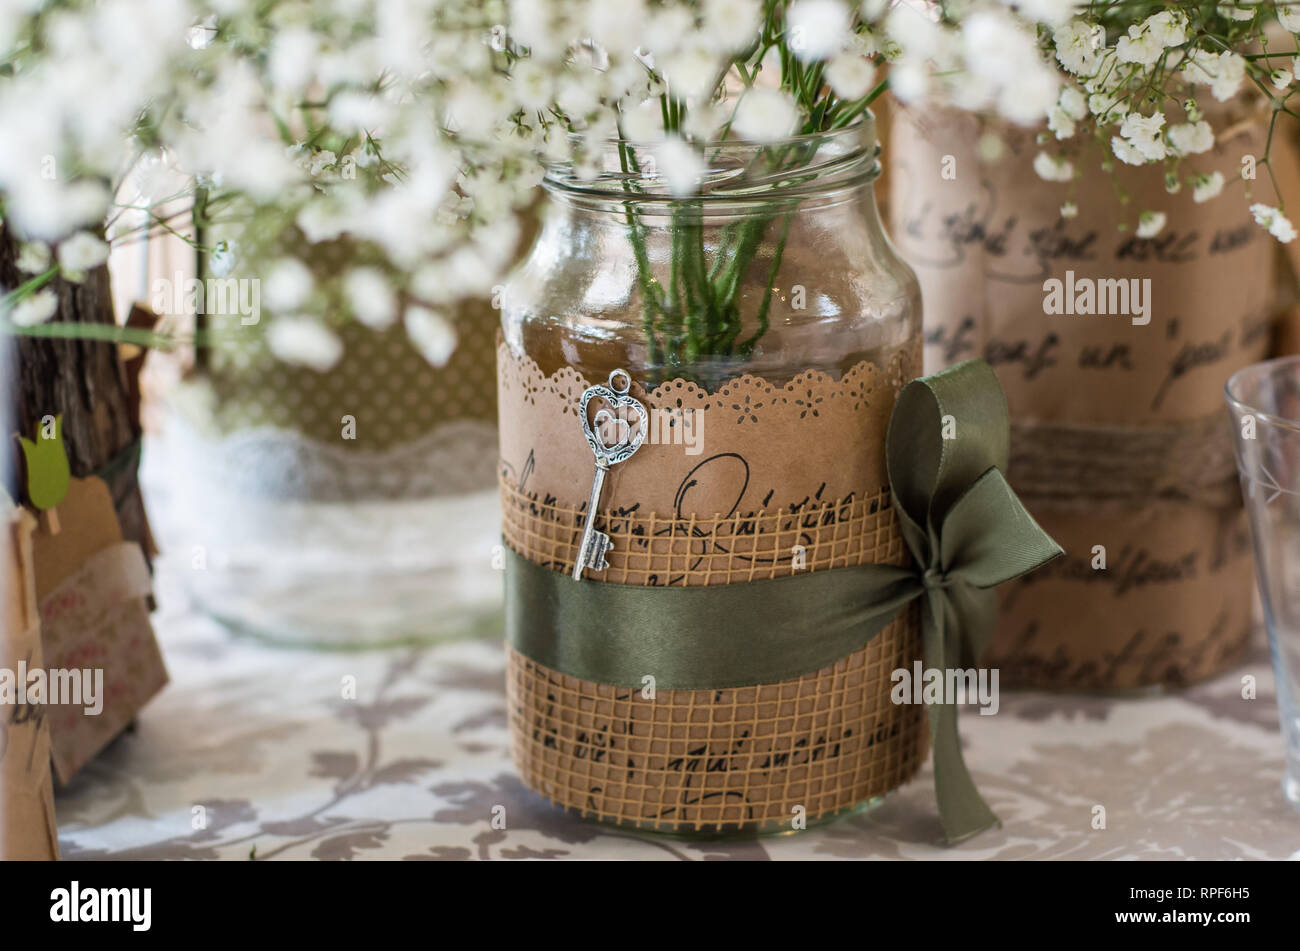 Wedding Decoration For Table White Flowers In The Glass Jar Plate